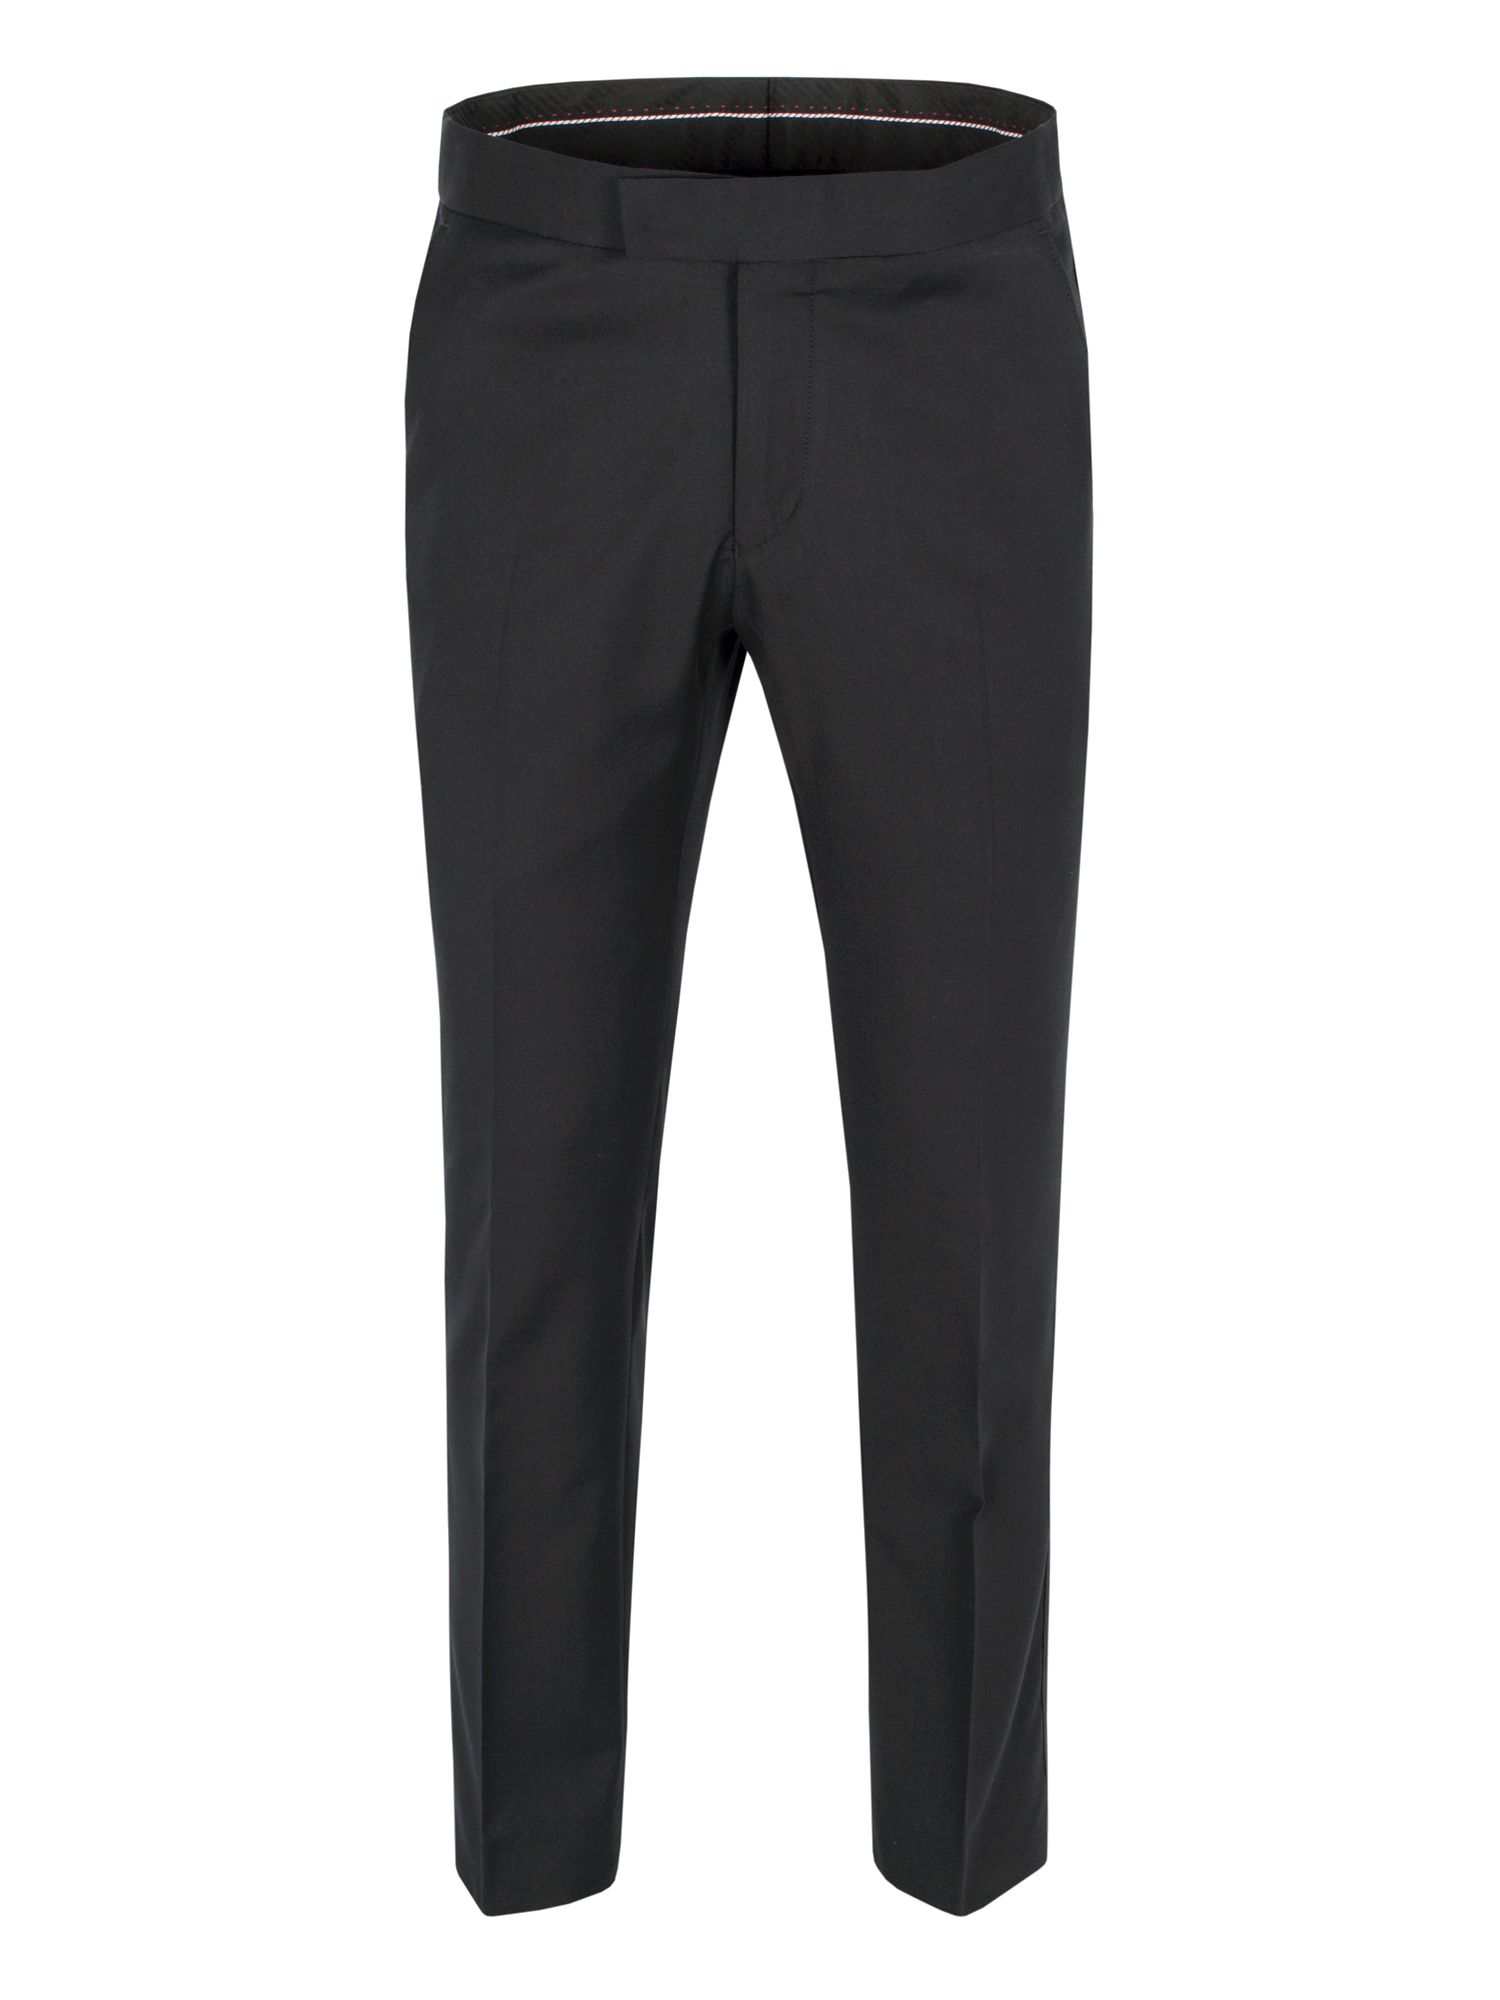 Dresswear formal flat front suit trouser